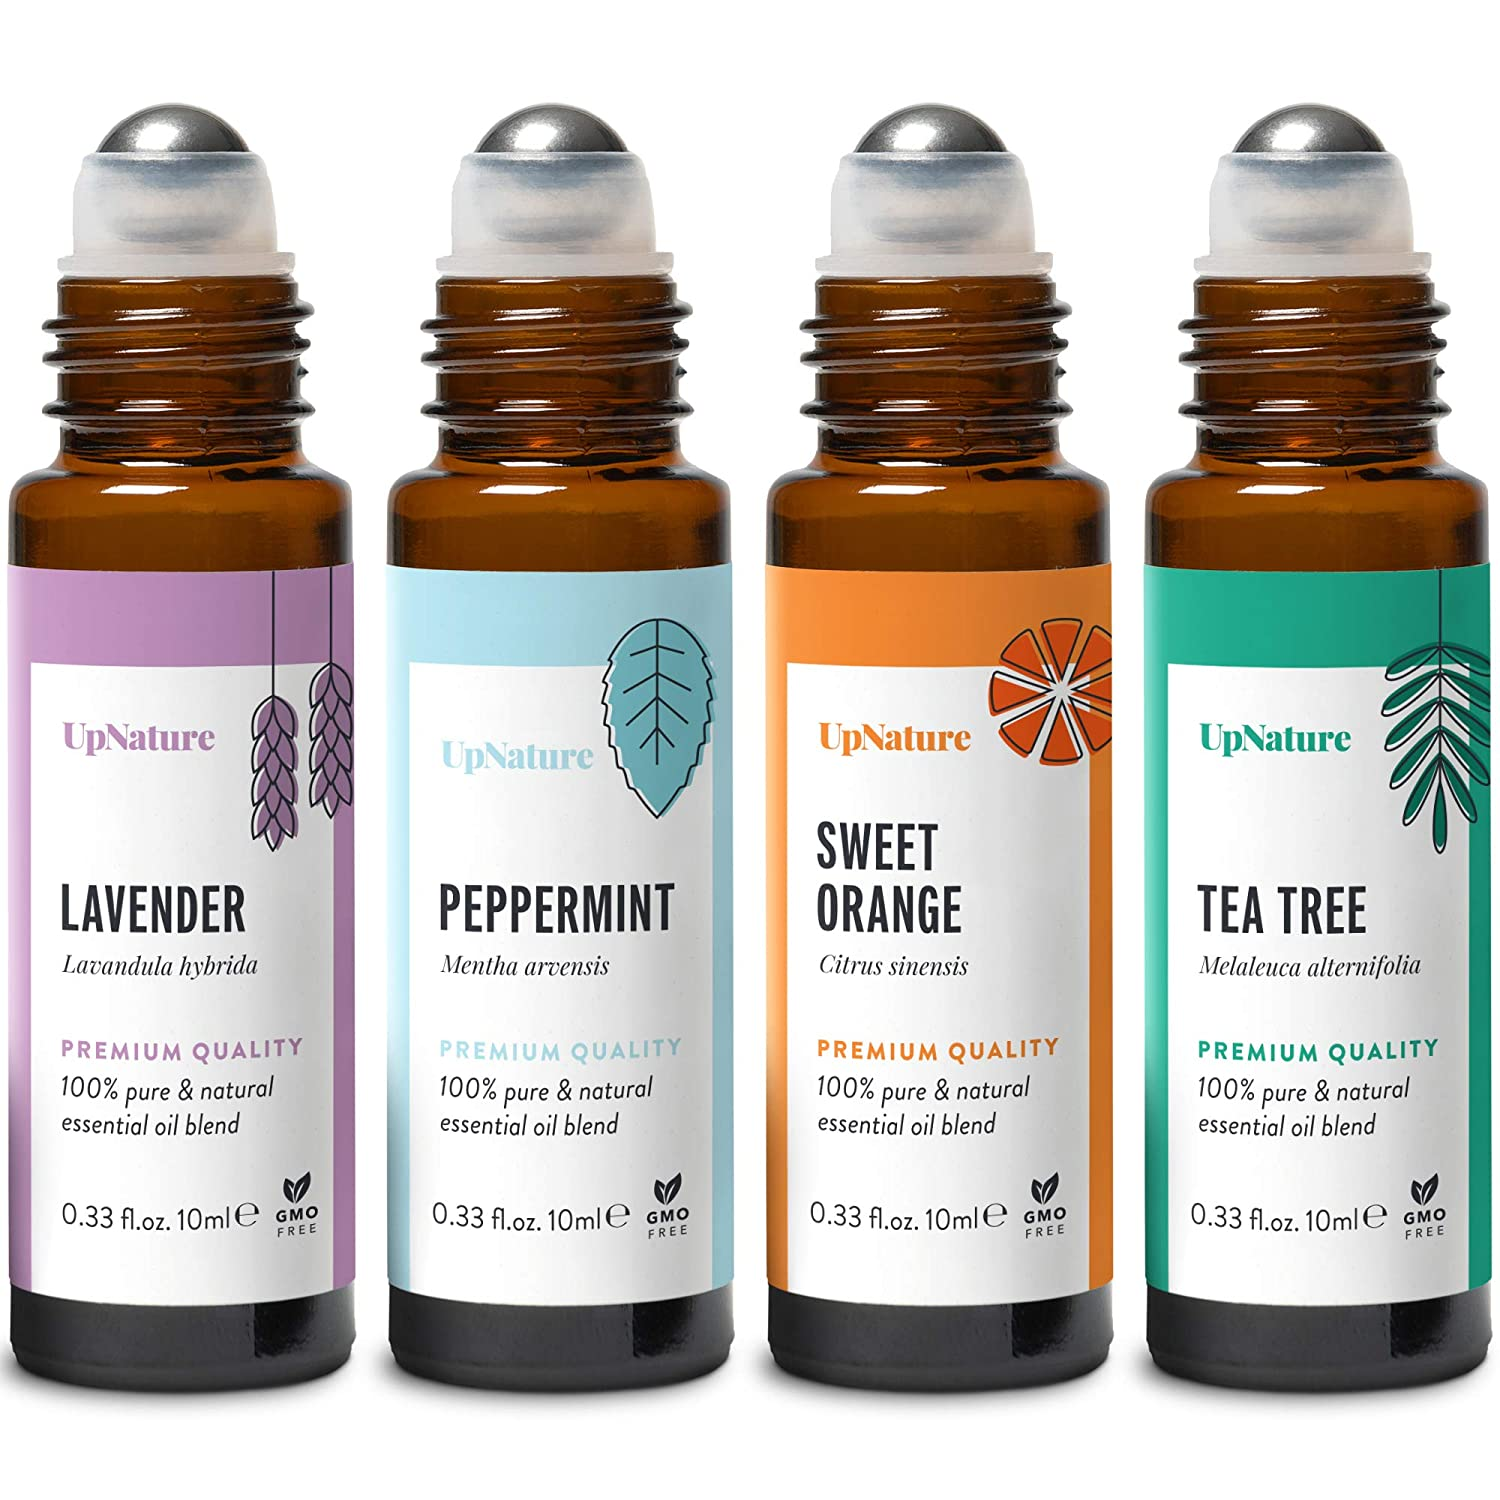 Classics Essential Oil Rollerball Set - Lavender, Tea Tree, Sweet Orange, Peppermint - Ready to Use Roll-On, Pre-Diluted, Aromatherapy, Therapeutic Grade – Perfect Stocking Stuffer!